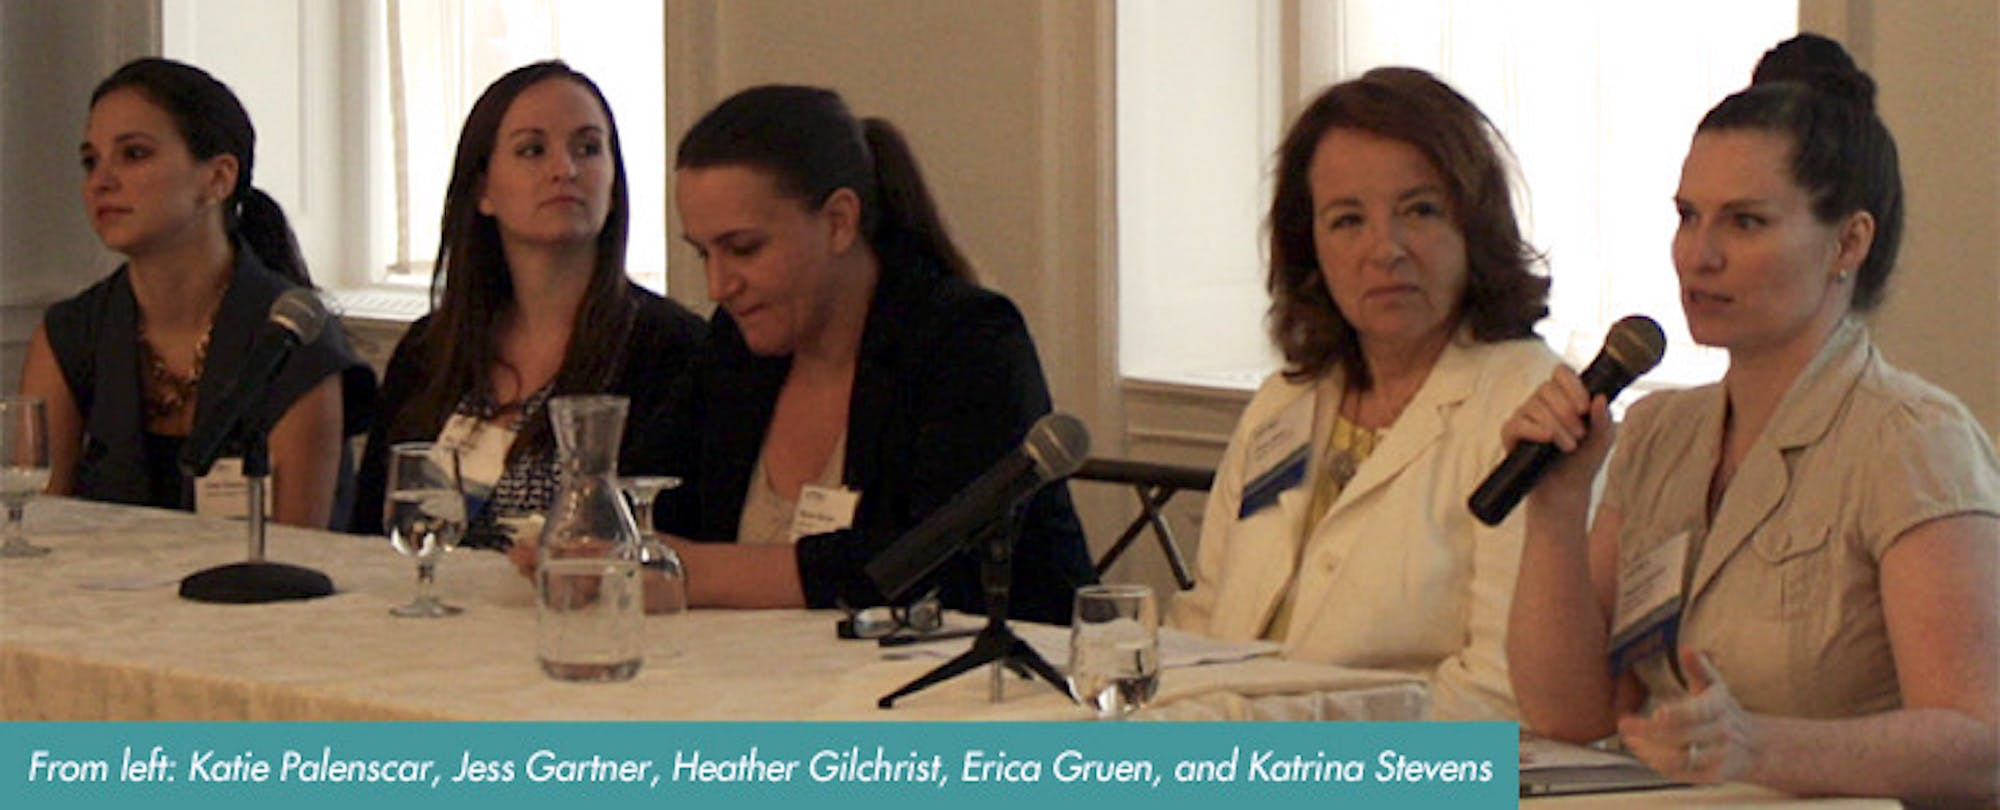 Edtech Women 'Lean In' and On Each Other